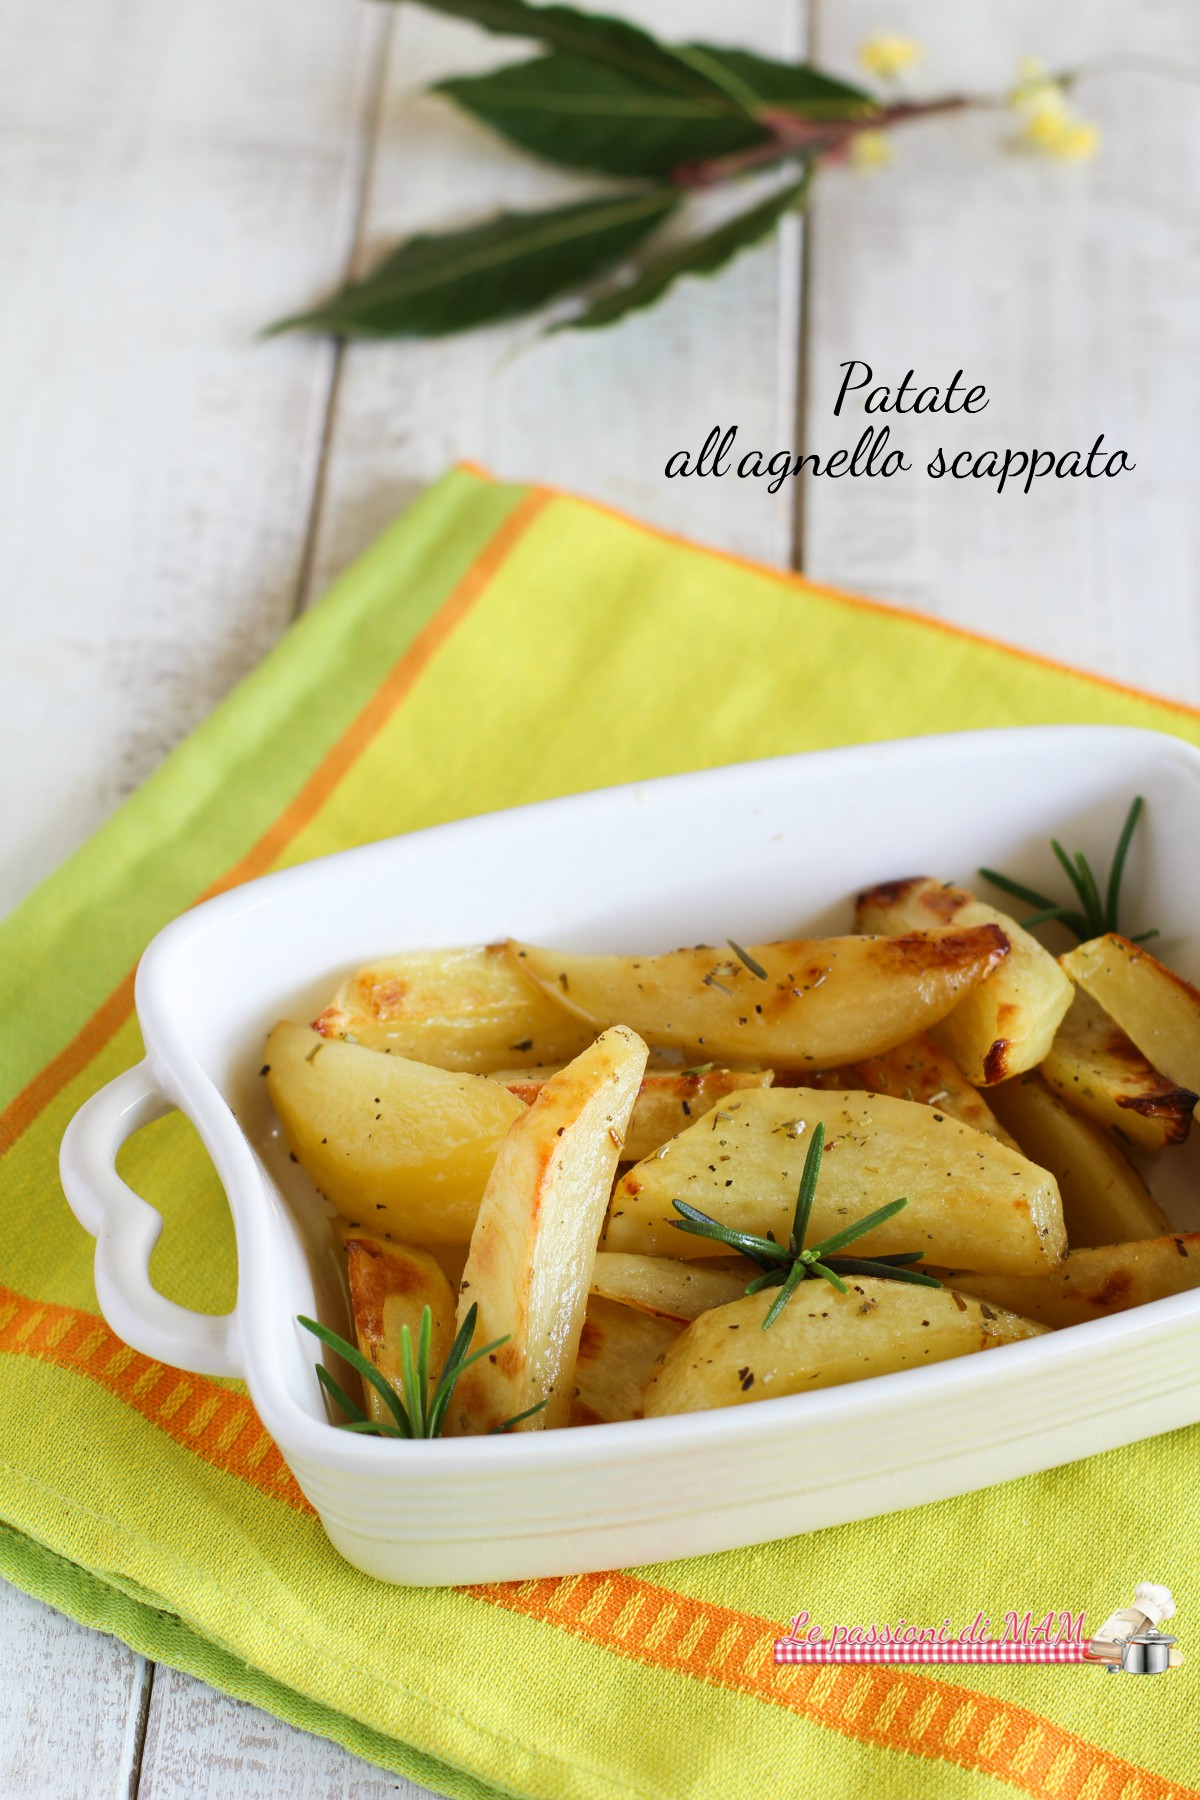 Patate all'agnello Scappato